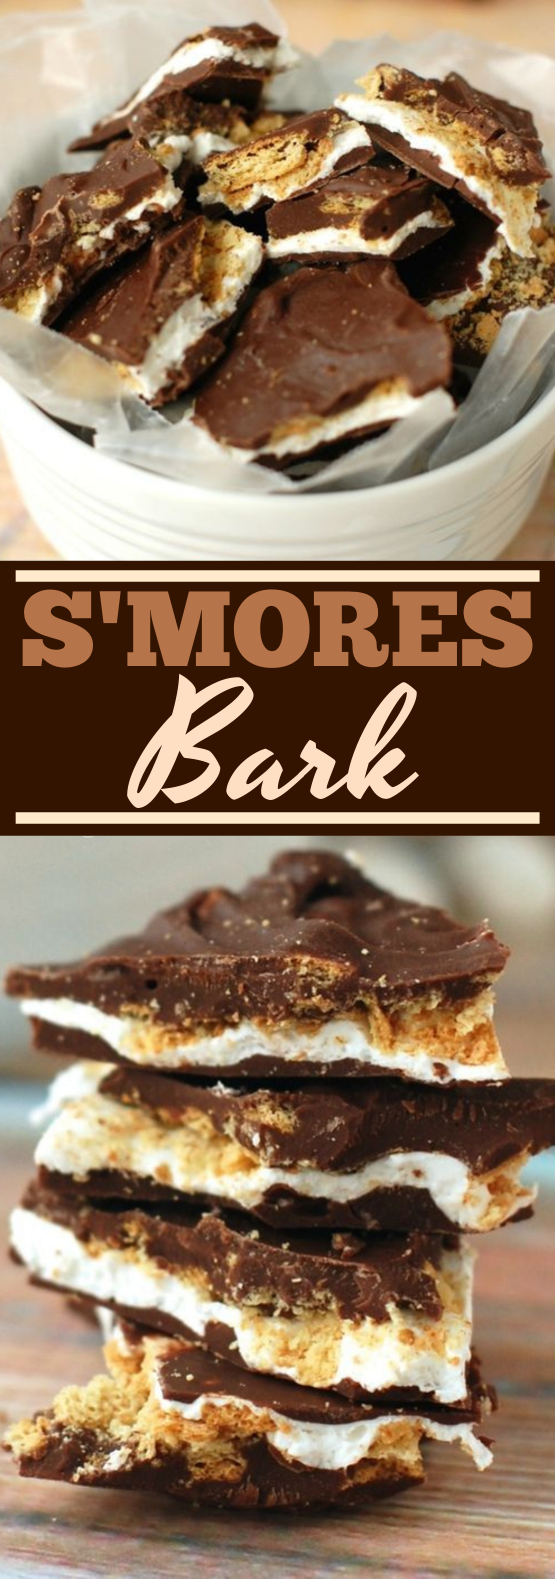 S'mores Chocolate Bark #chocolate #desserts